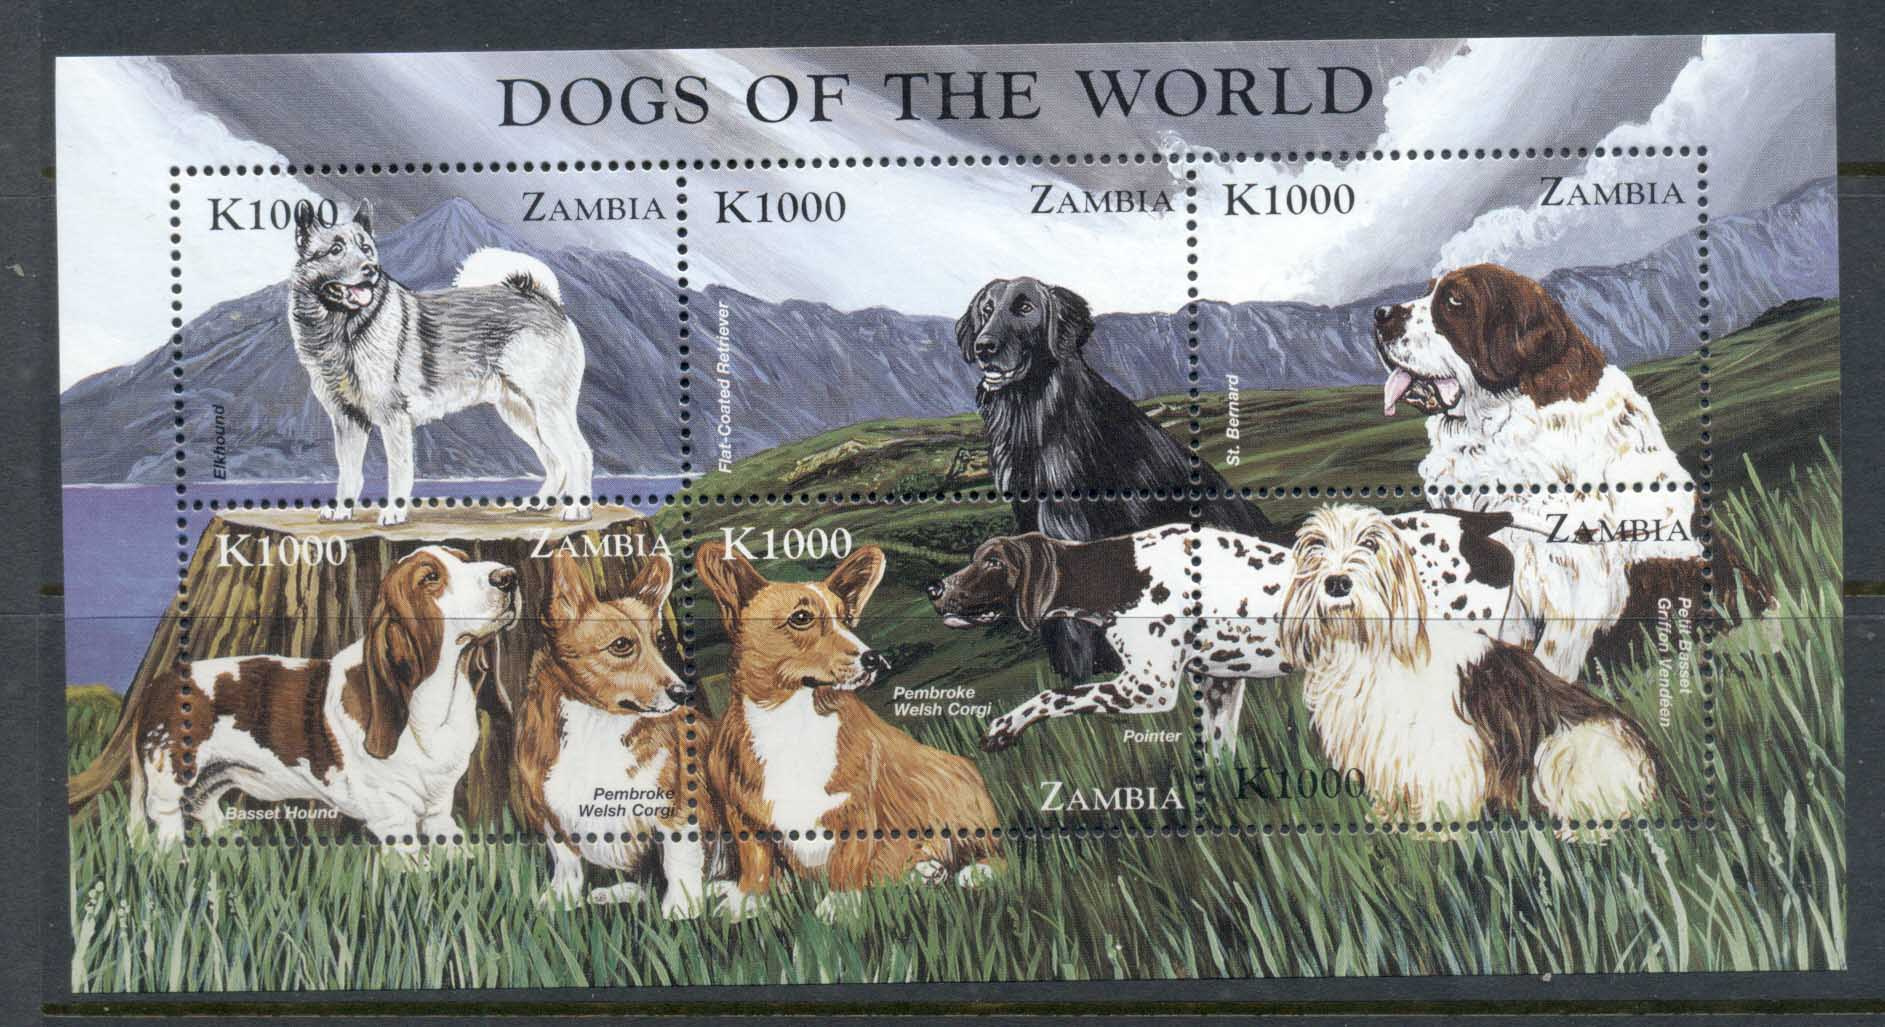 Zambia 1999 Dogs of the World sheetlet MUH